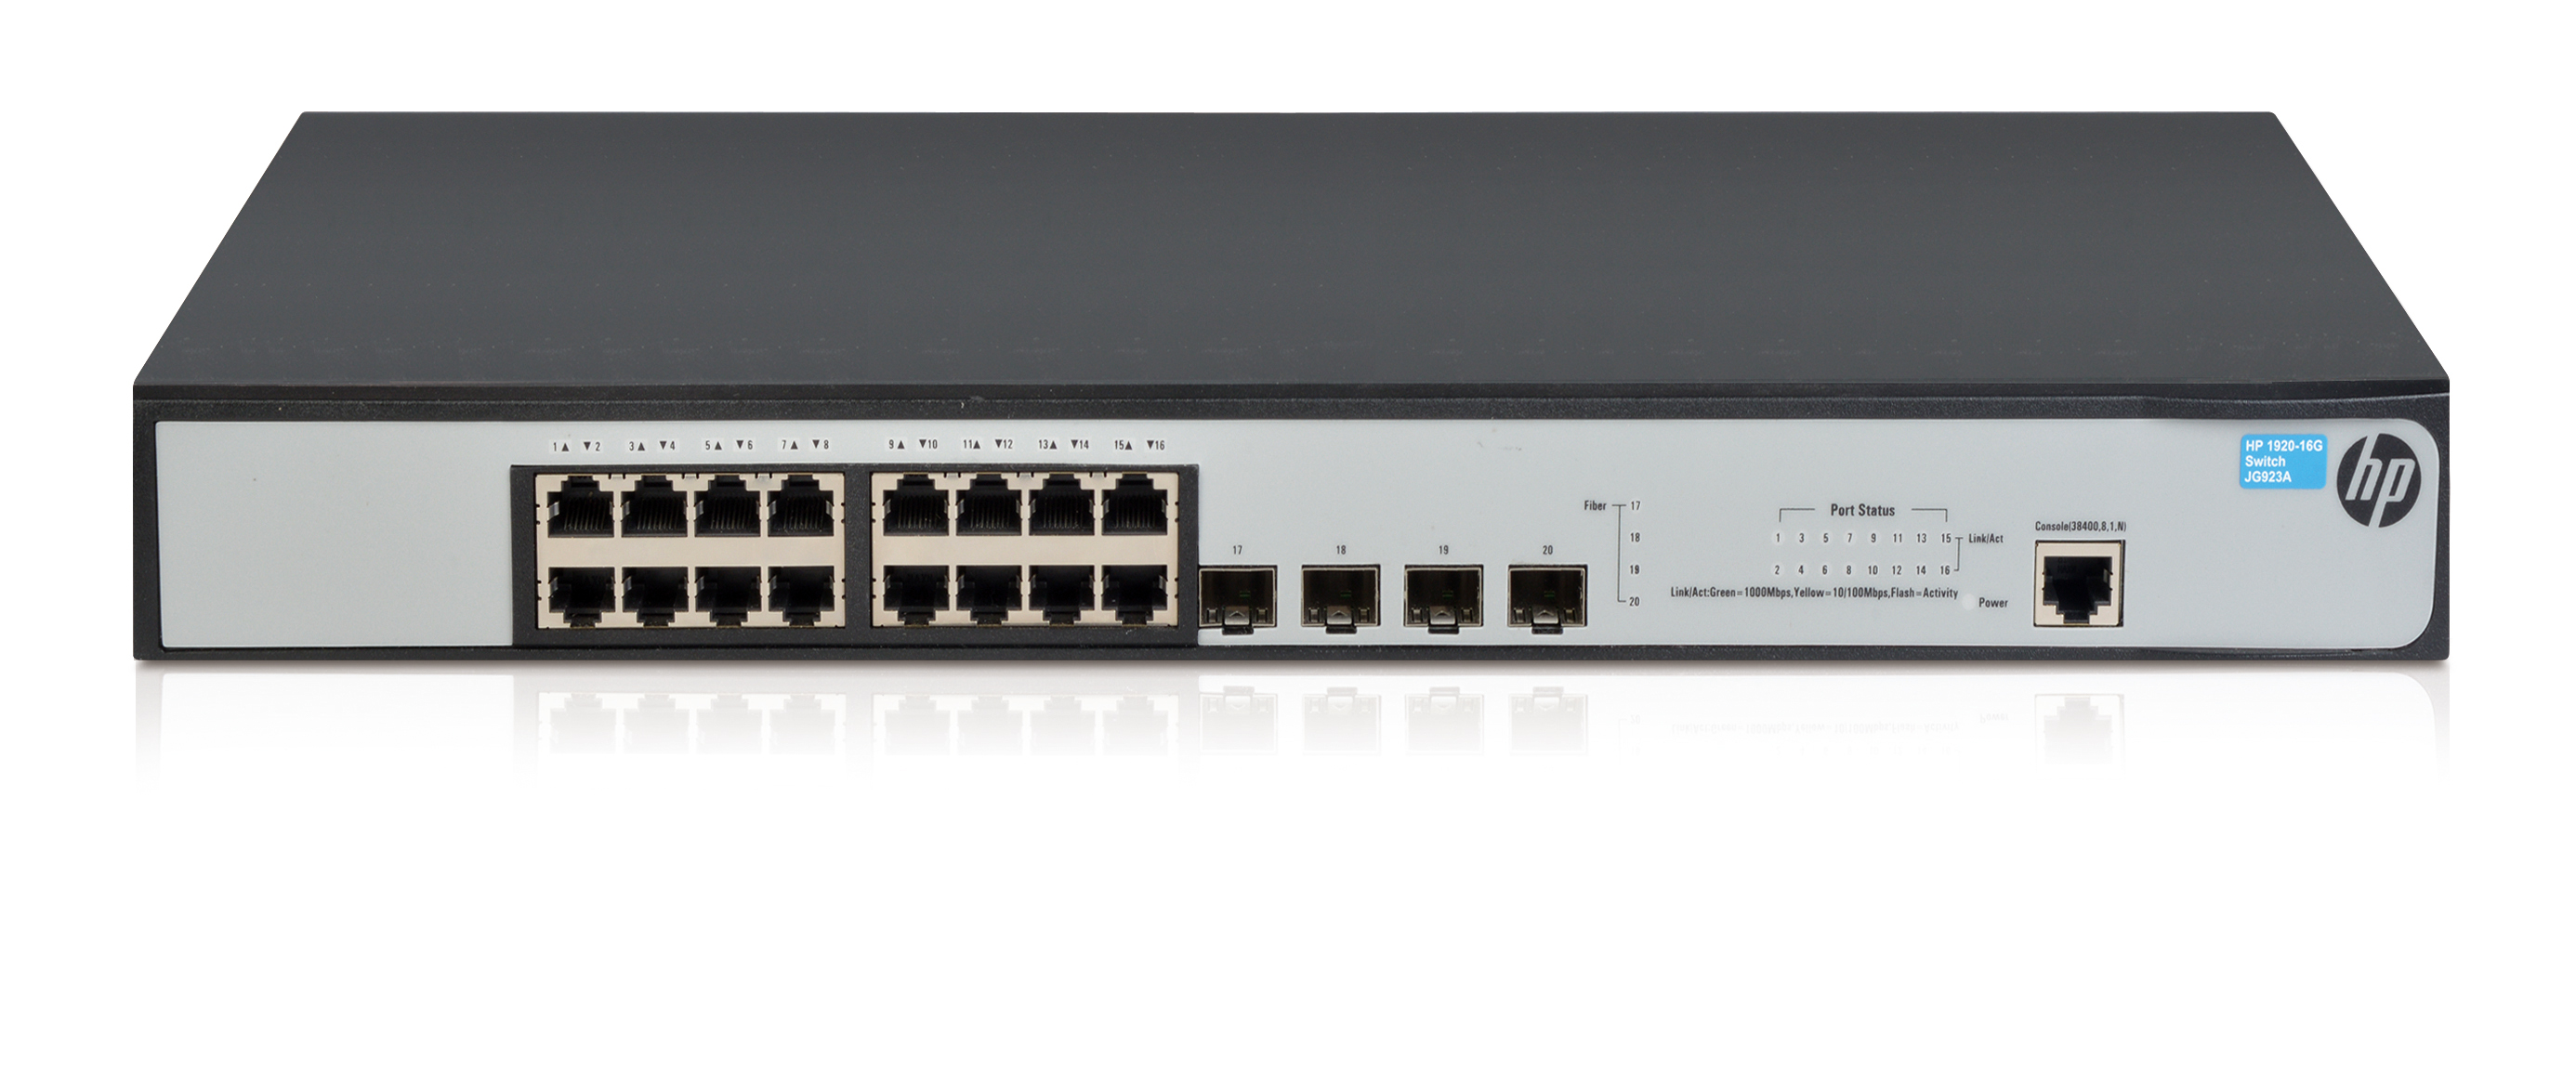 HPE 1920 16G Switch